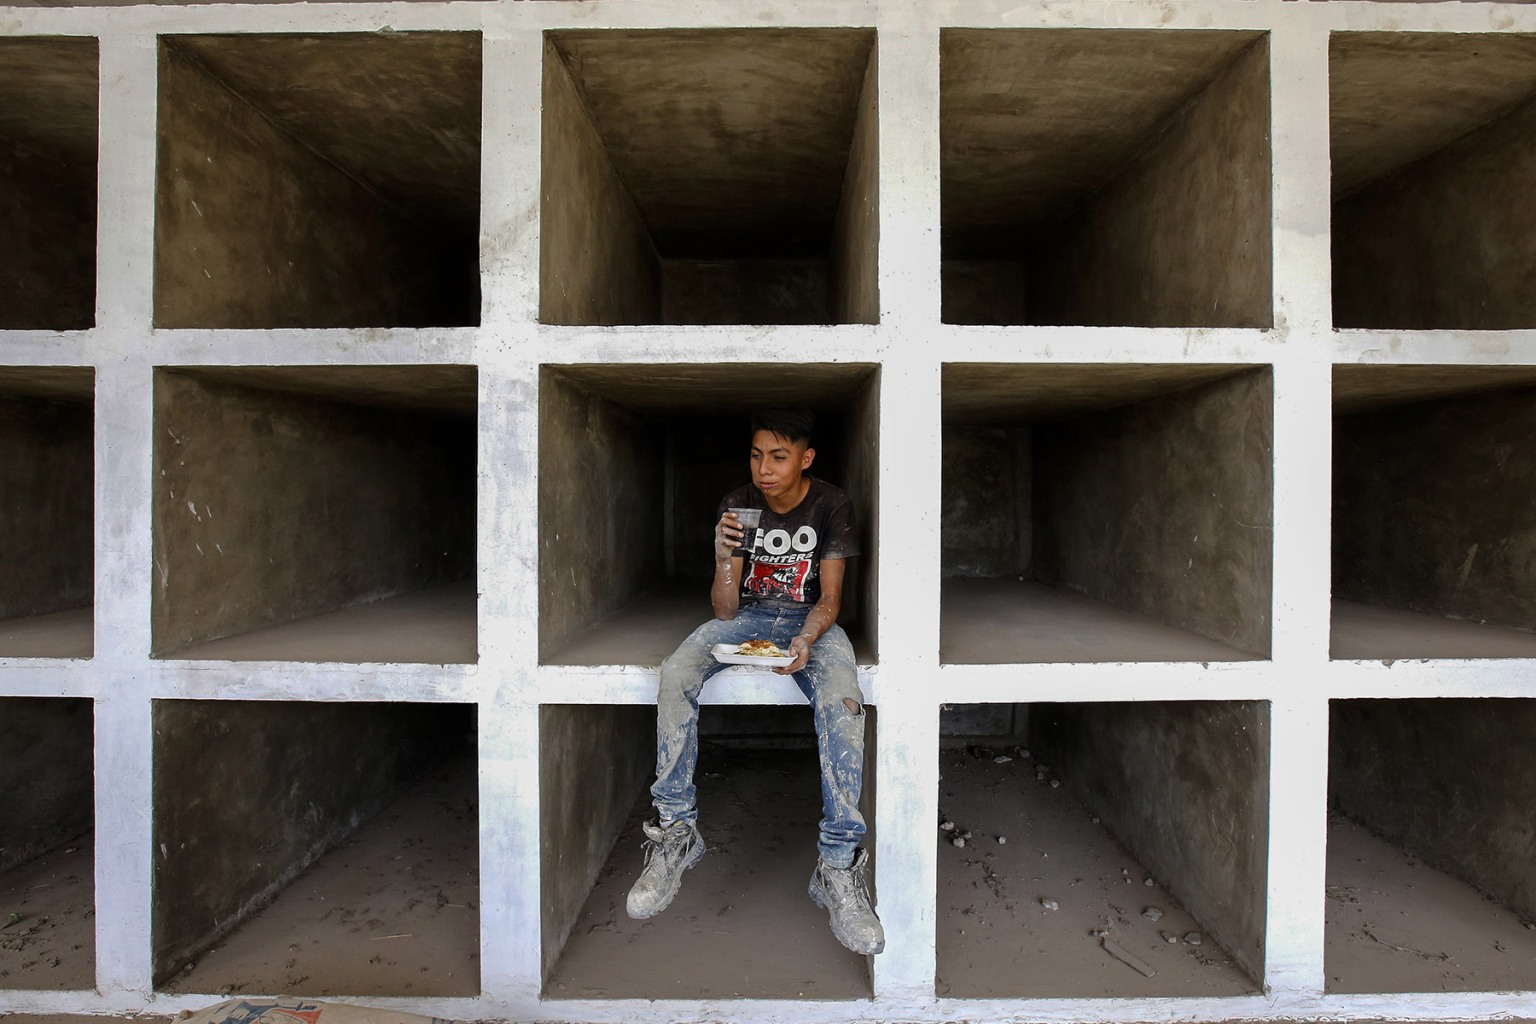 A man rests as crypts are adapted for hundreds of unidentified bodies at the municipal pantheon in El Salto, Jalisco State, Mexico, on Sept. 25. - Dozens of Mexicans searching for missing relatives amid a wave of violence linked to powerful drug cartels traveled to Guadalajara, where a scandal has erupted over a truck full of unidentified bodies that overflowed local morgues. ULISES RUIZ/AFP/Getty Images